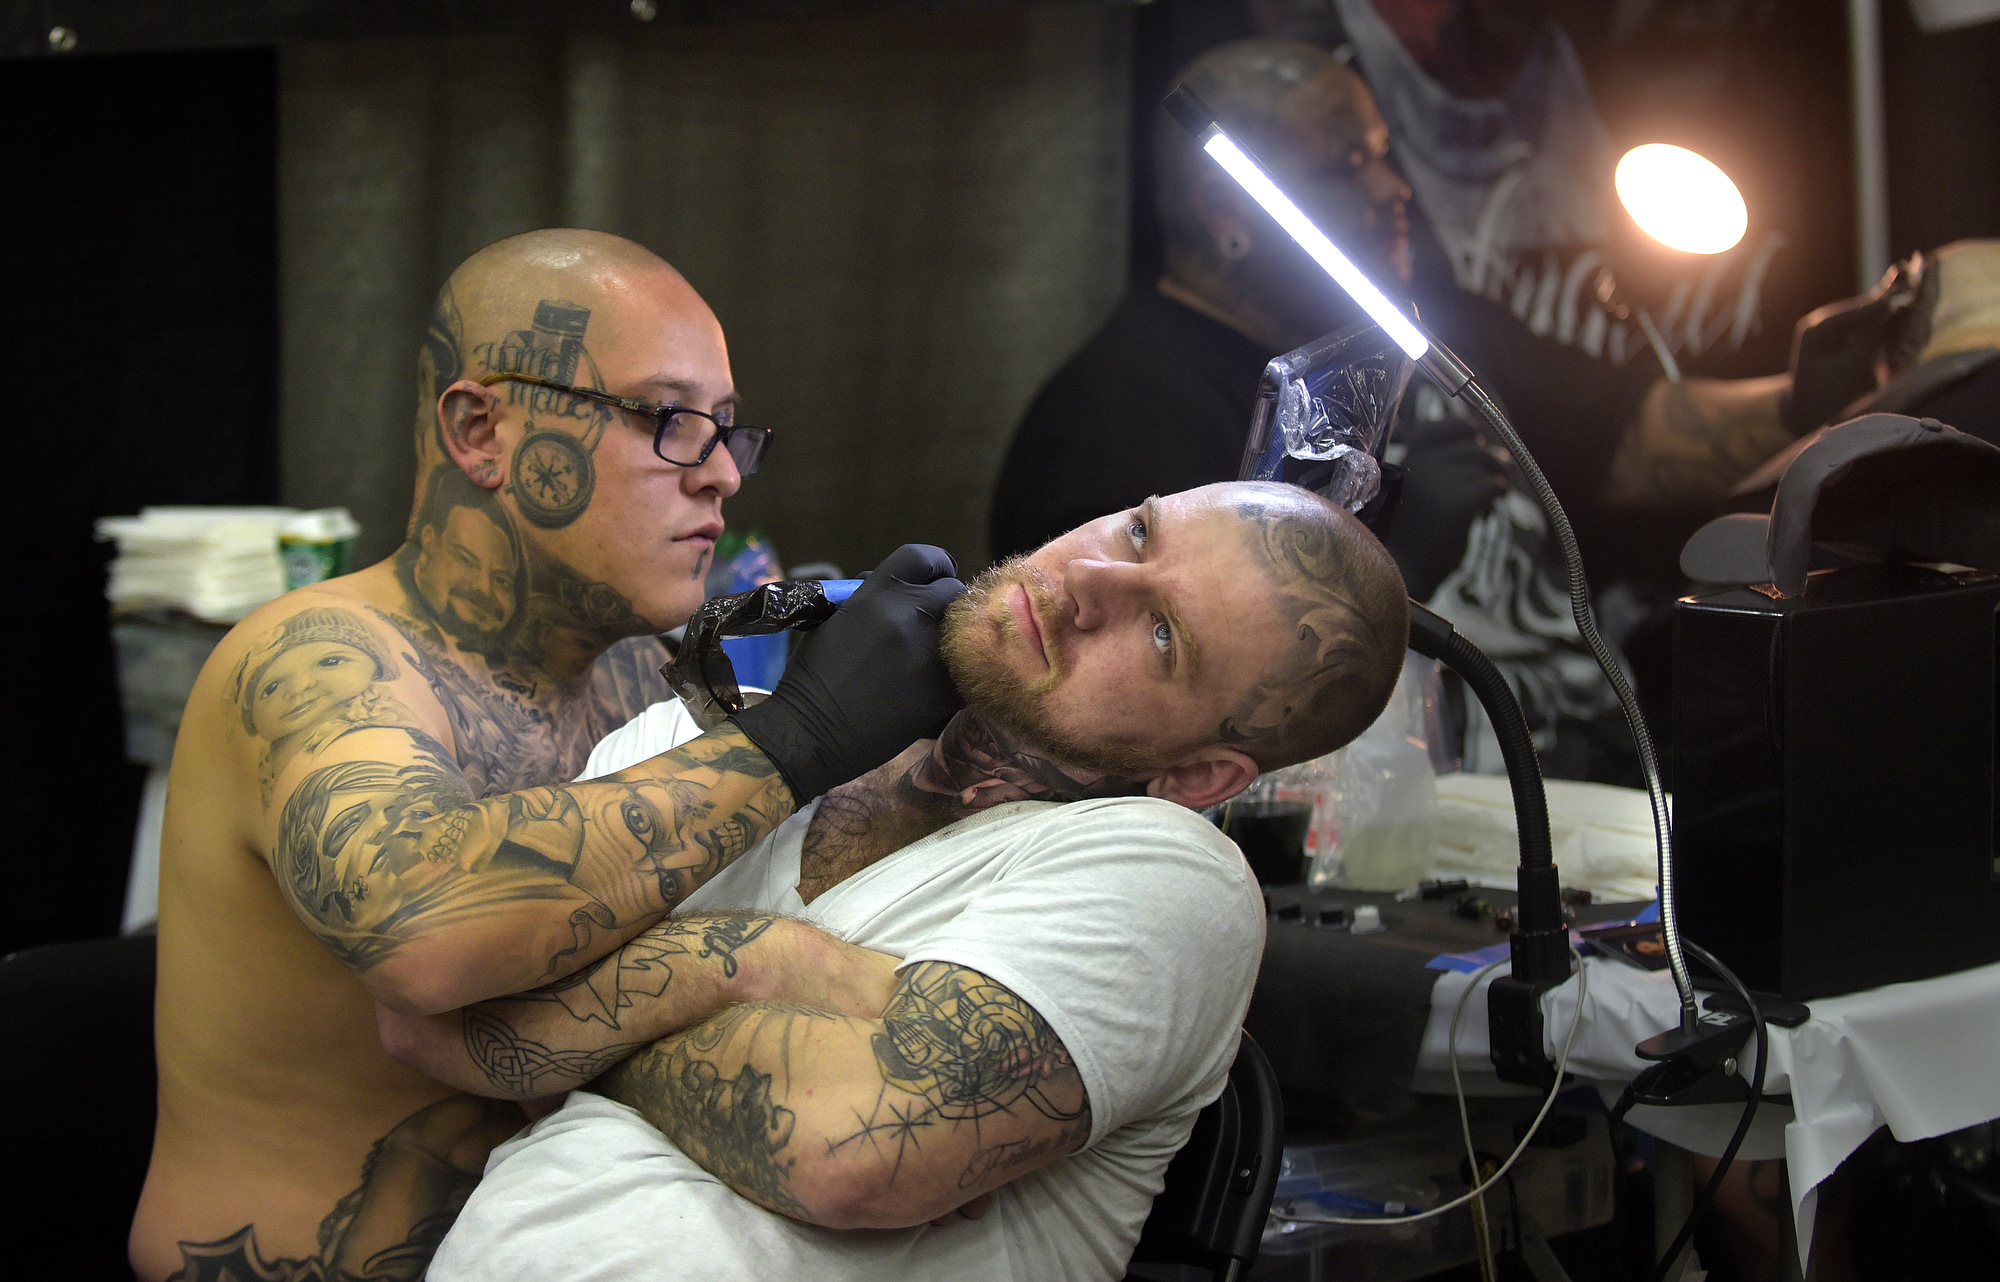 Stories on skin: scenes from the Baltimore Tattoo Arts Convention